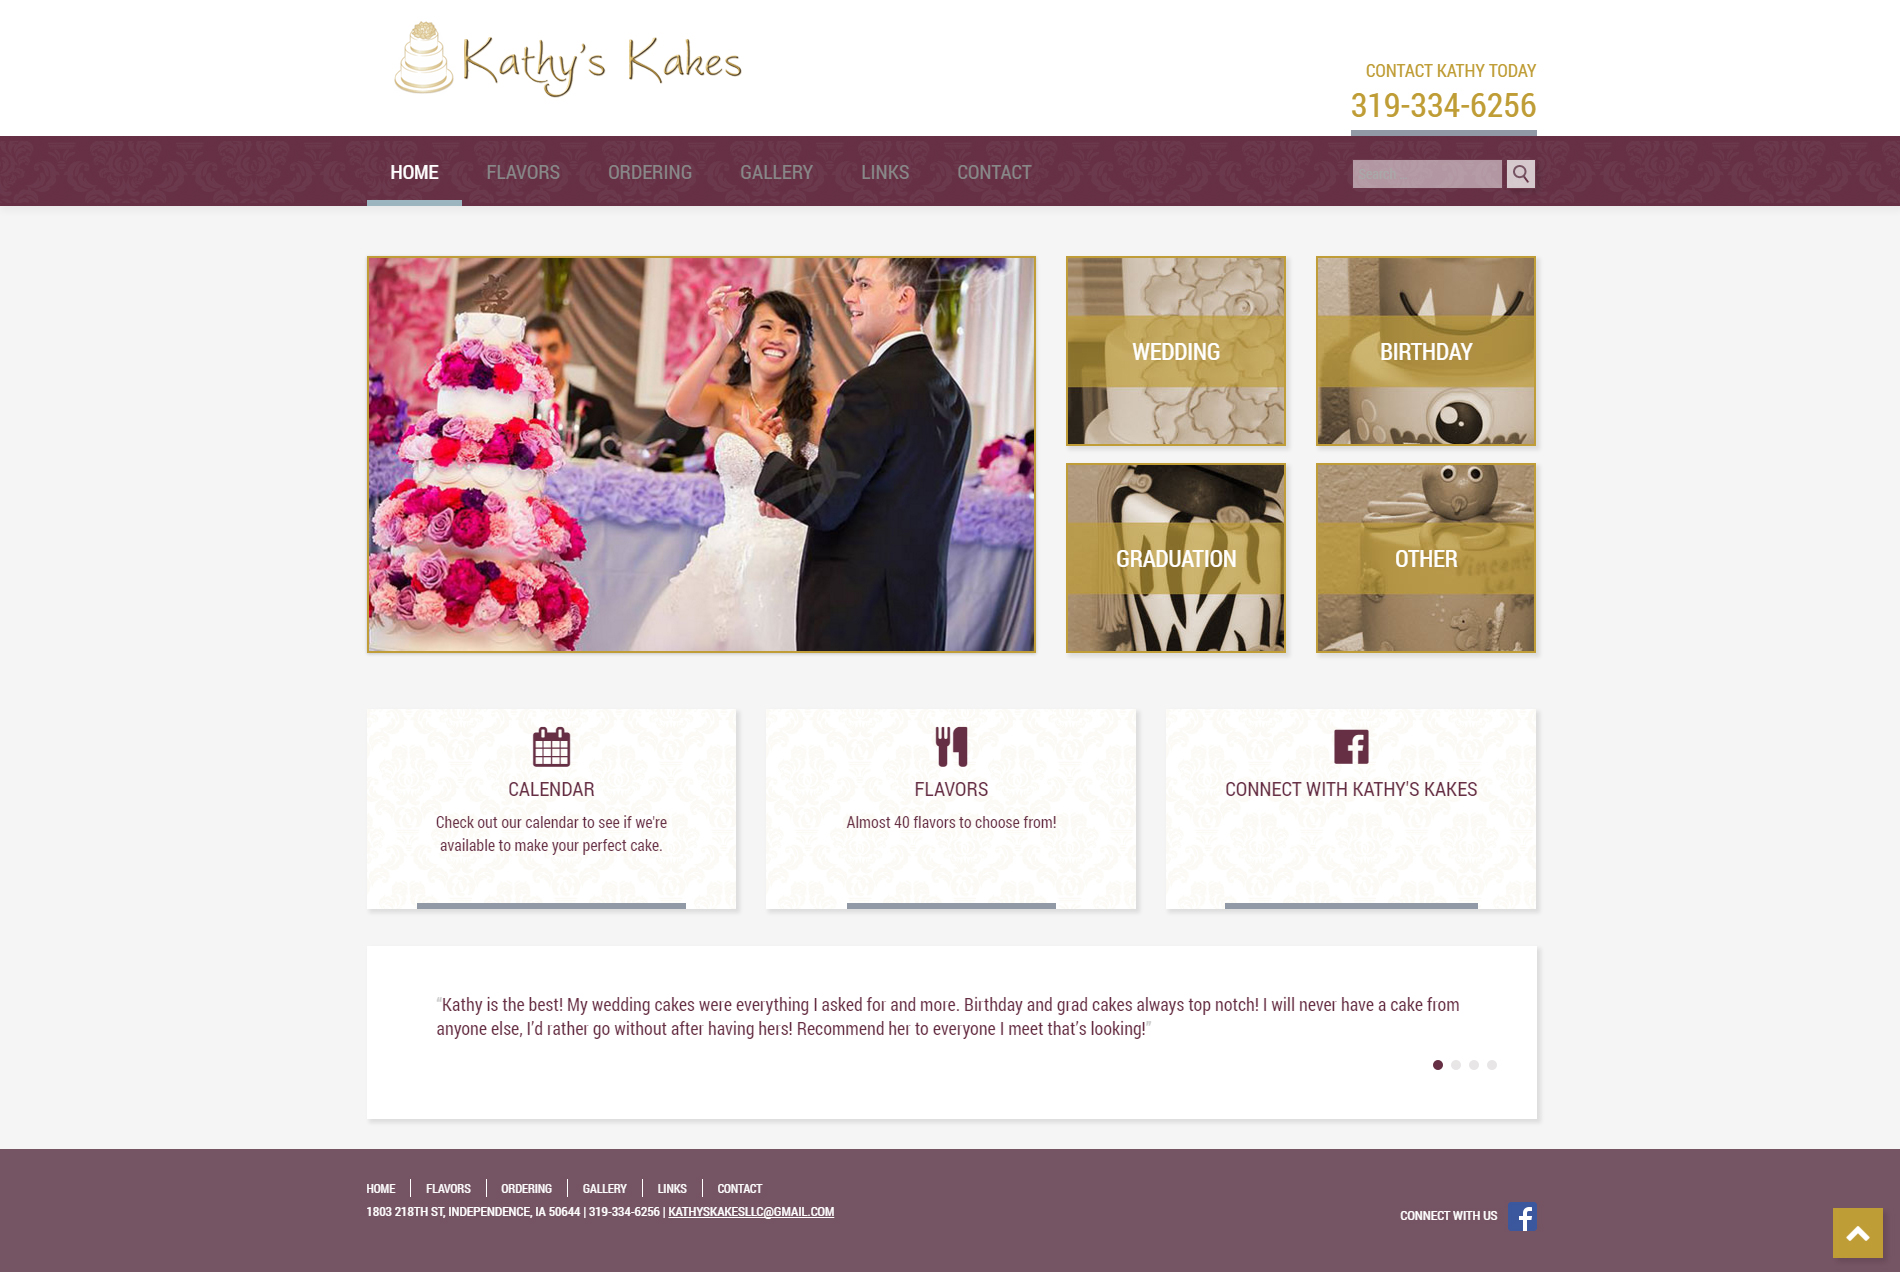 Kathy's Kakes - Website